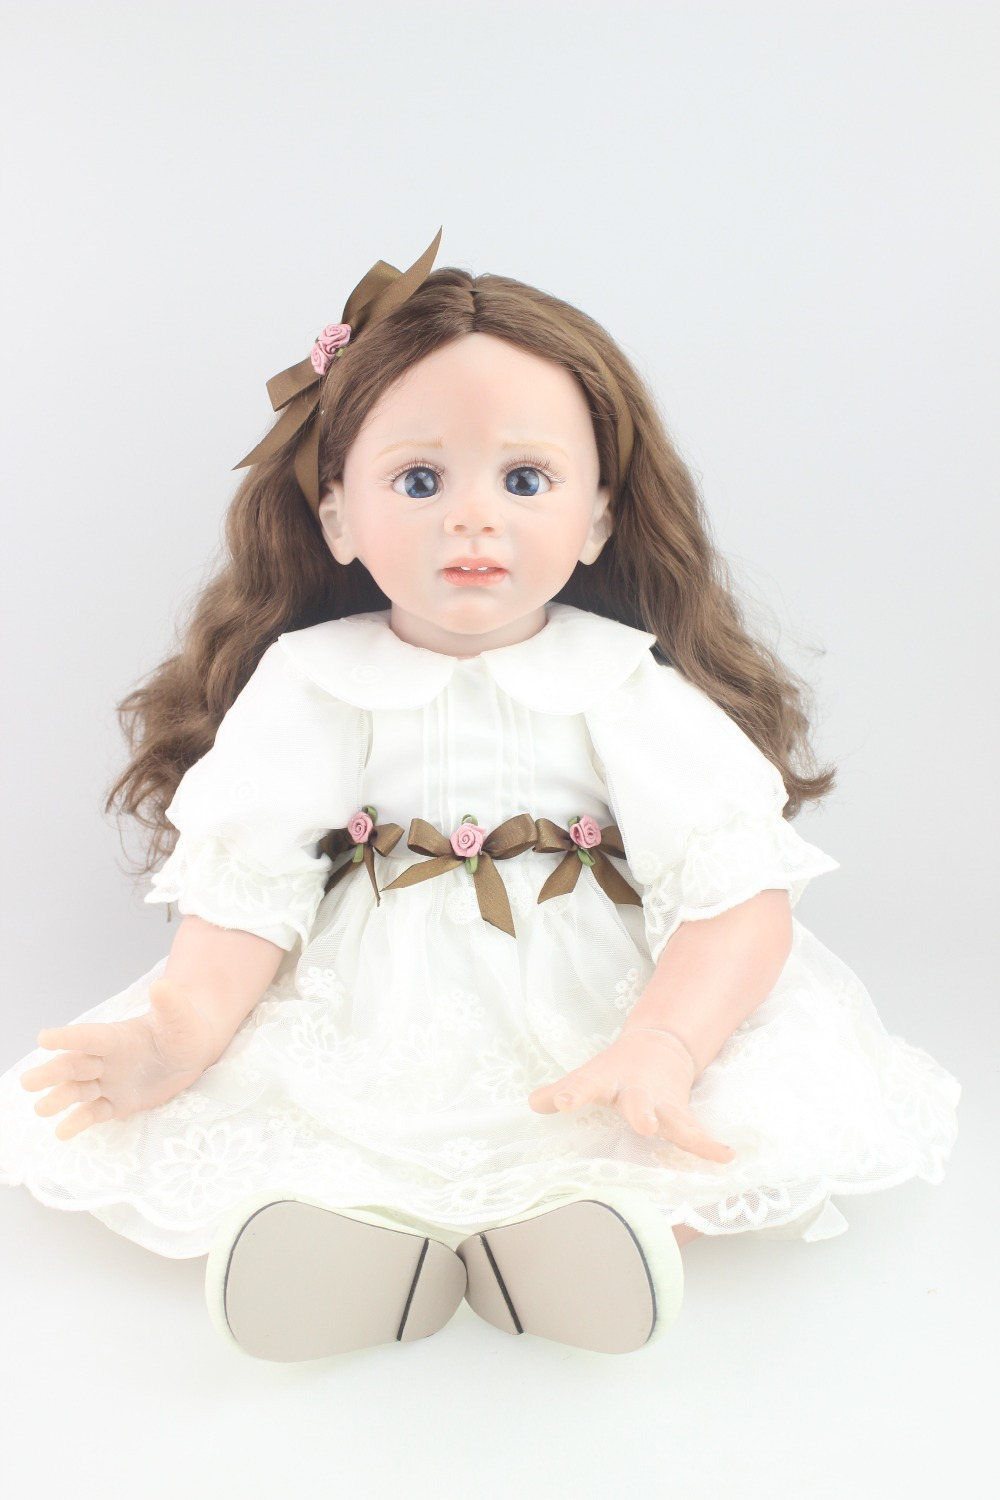 NPK NEW design soft silicone boneca reborn baby doll fridolin rooted hair fashion doll Christmas gift and baby toysNPK NEW design soft silicone boneca reborn baby doll fridolin rooted hair fashion doll Christmas gift and baby toys